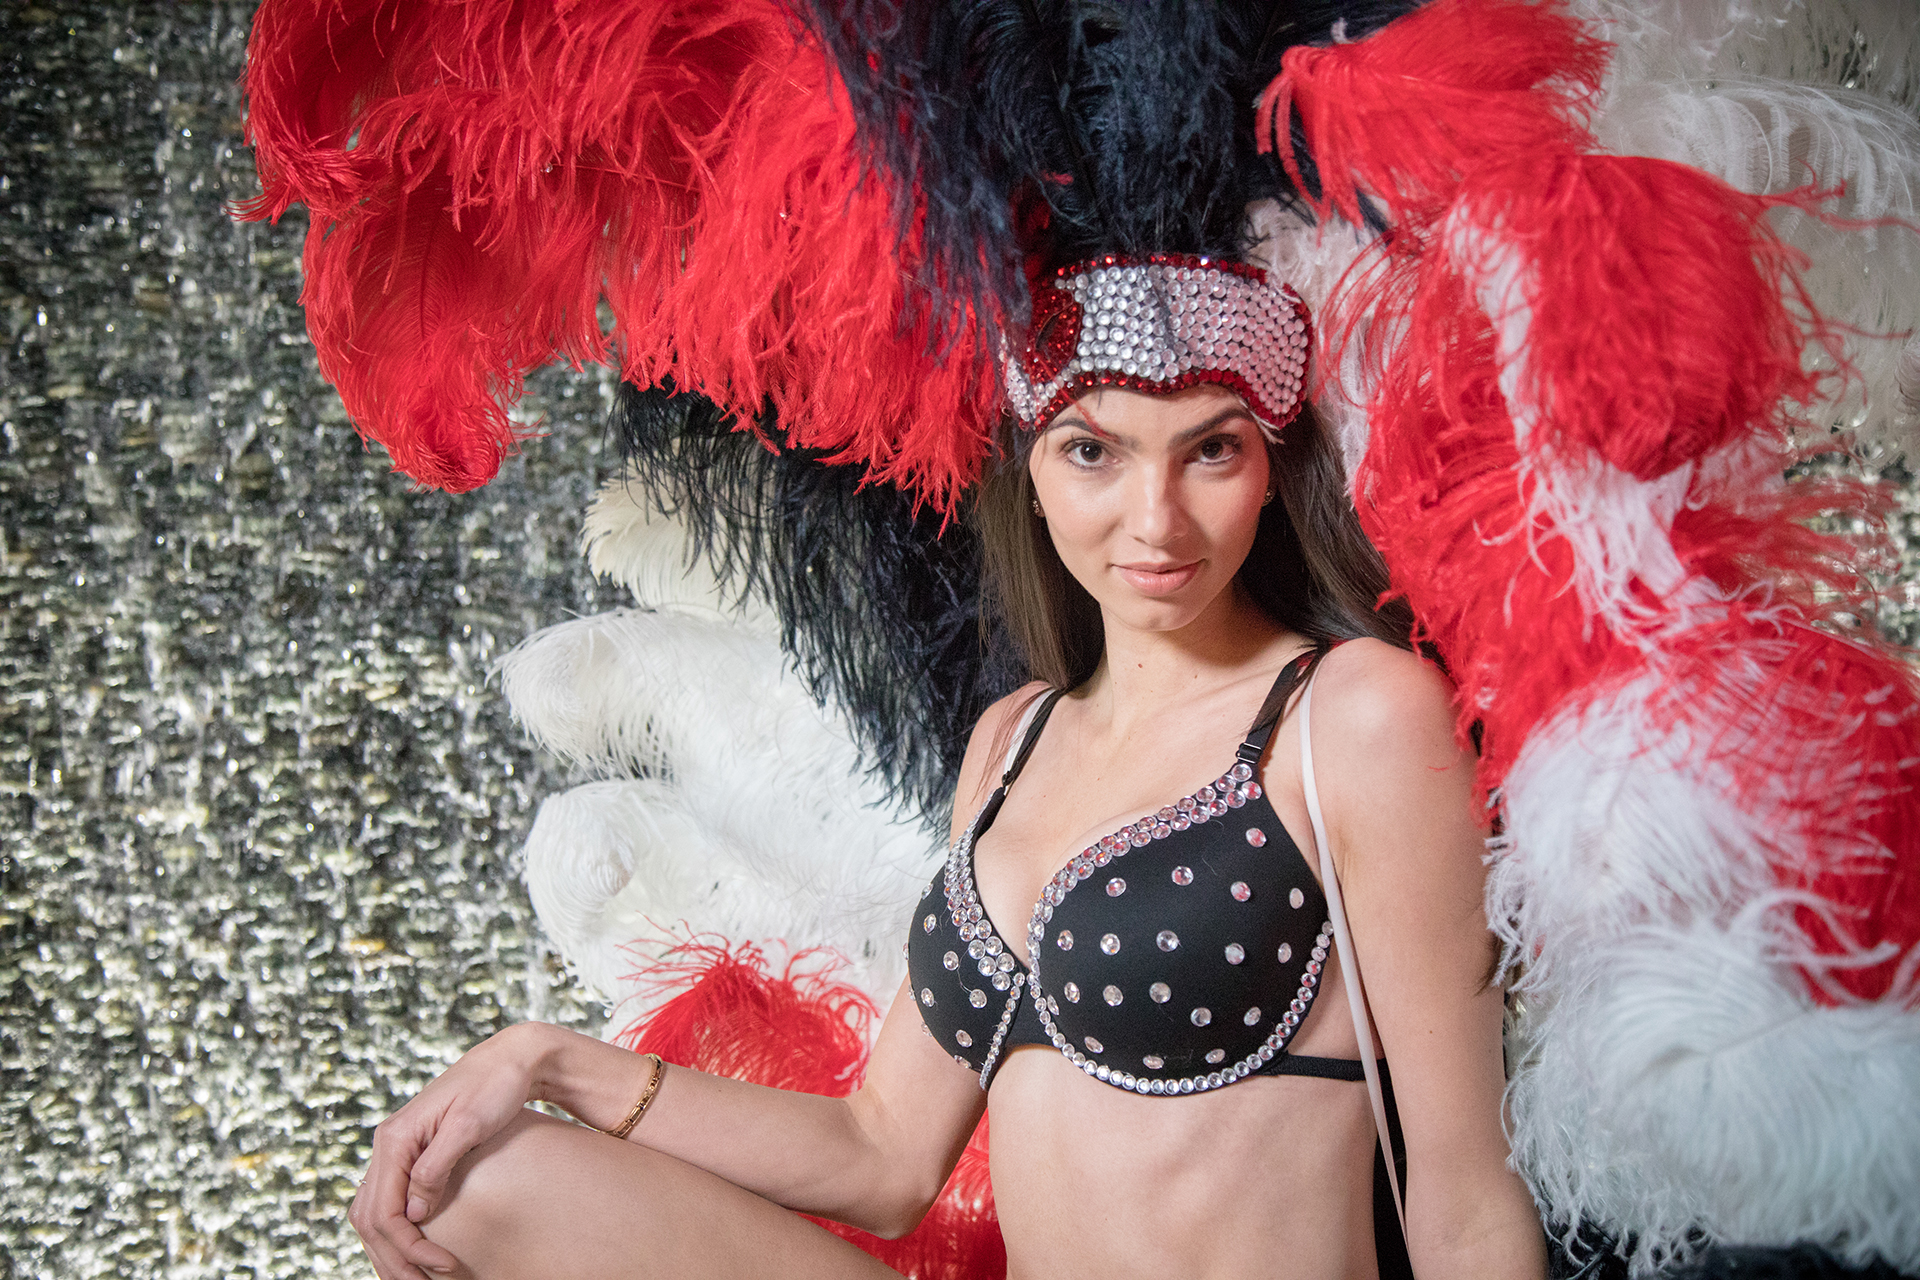 The Cheeky Truth Showgirl